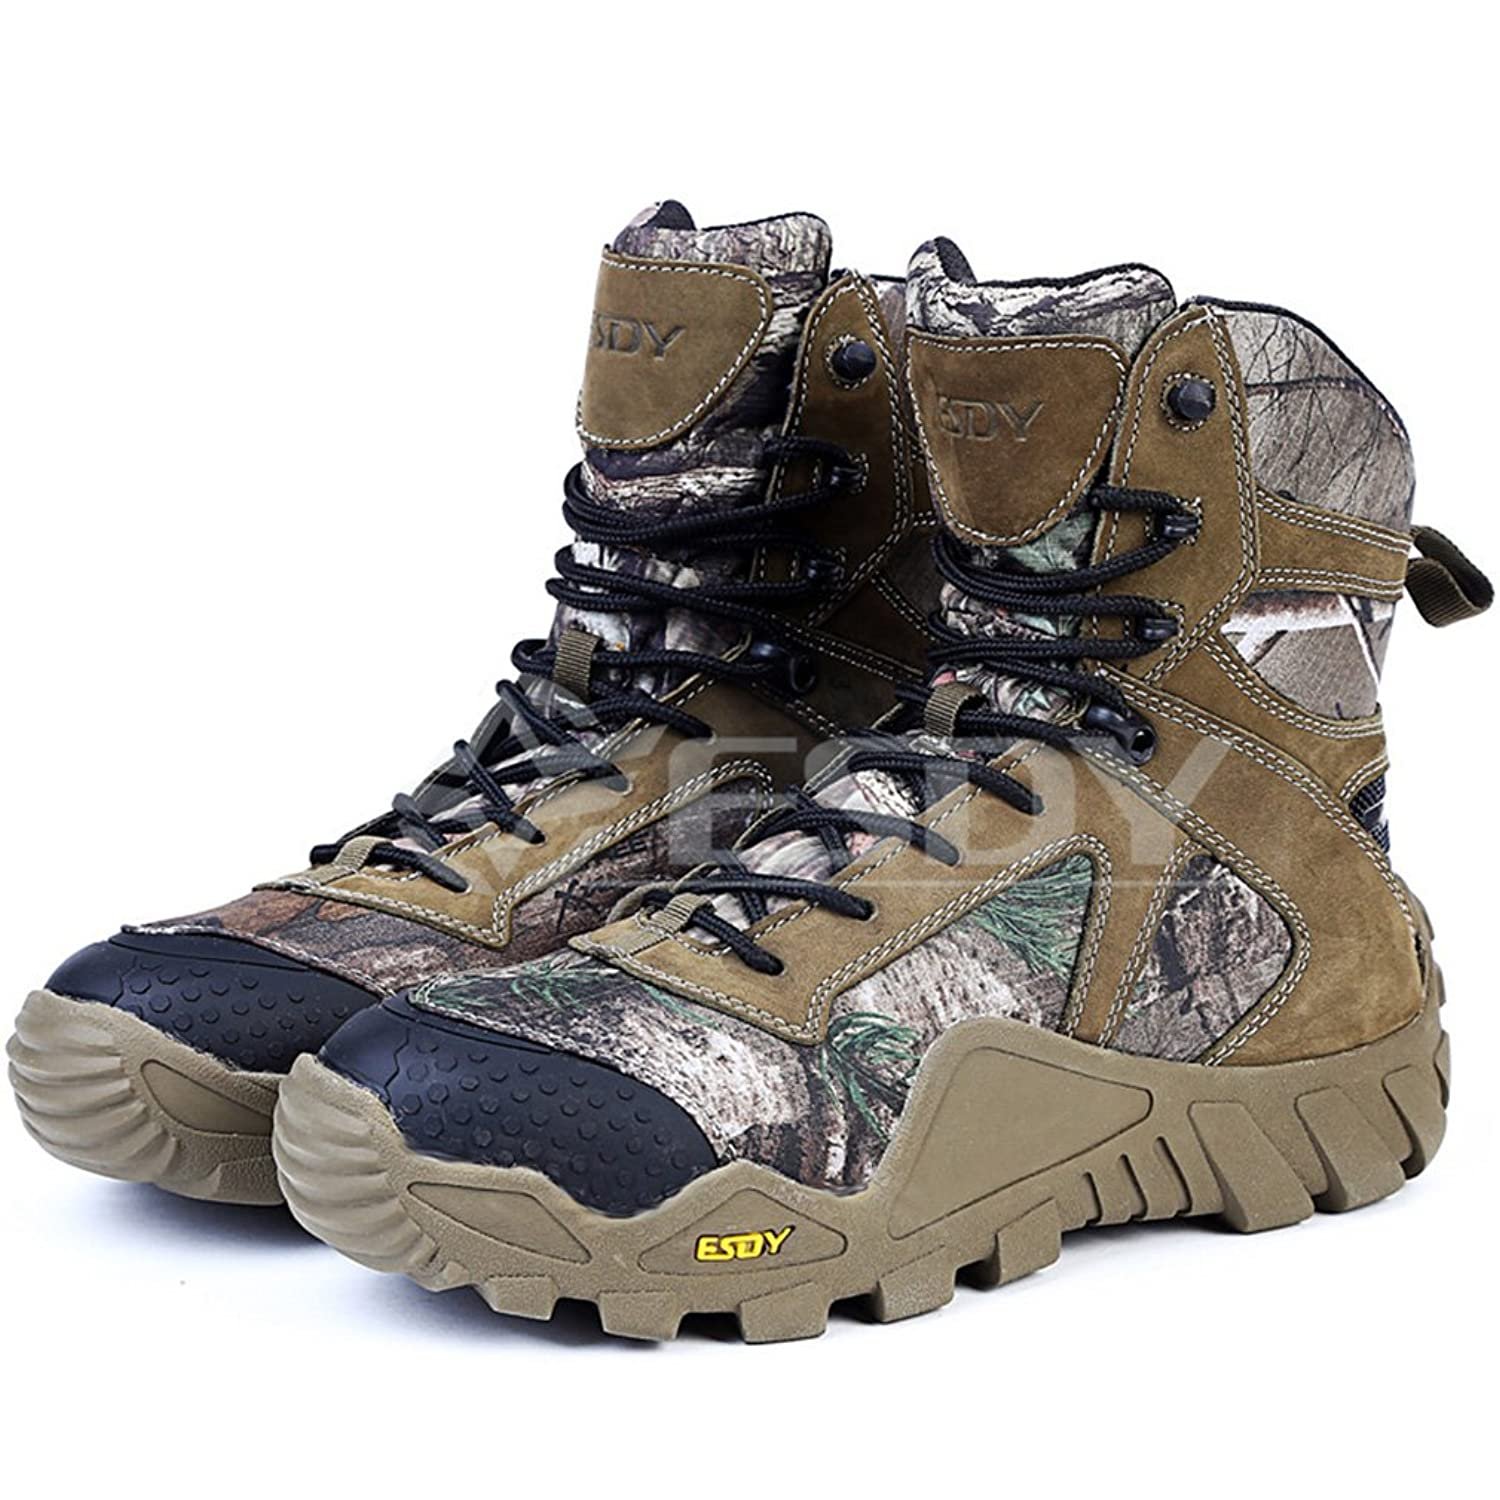 Chaussures Emansmoer Militaires homme pBrG3S